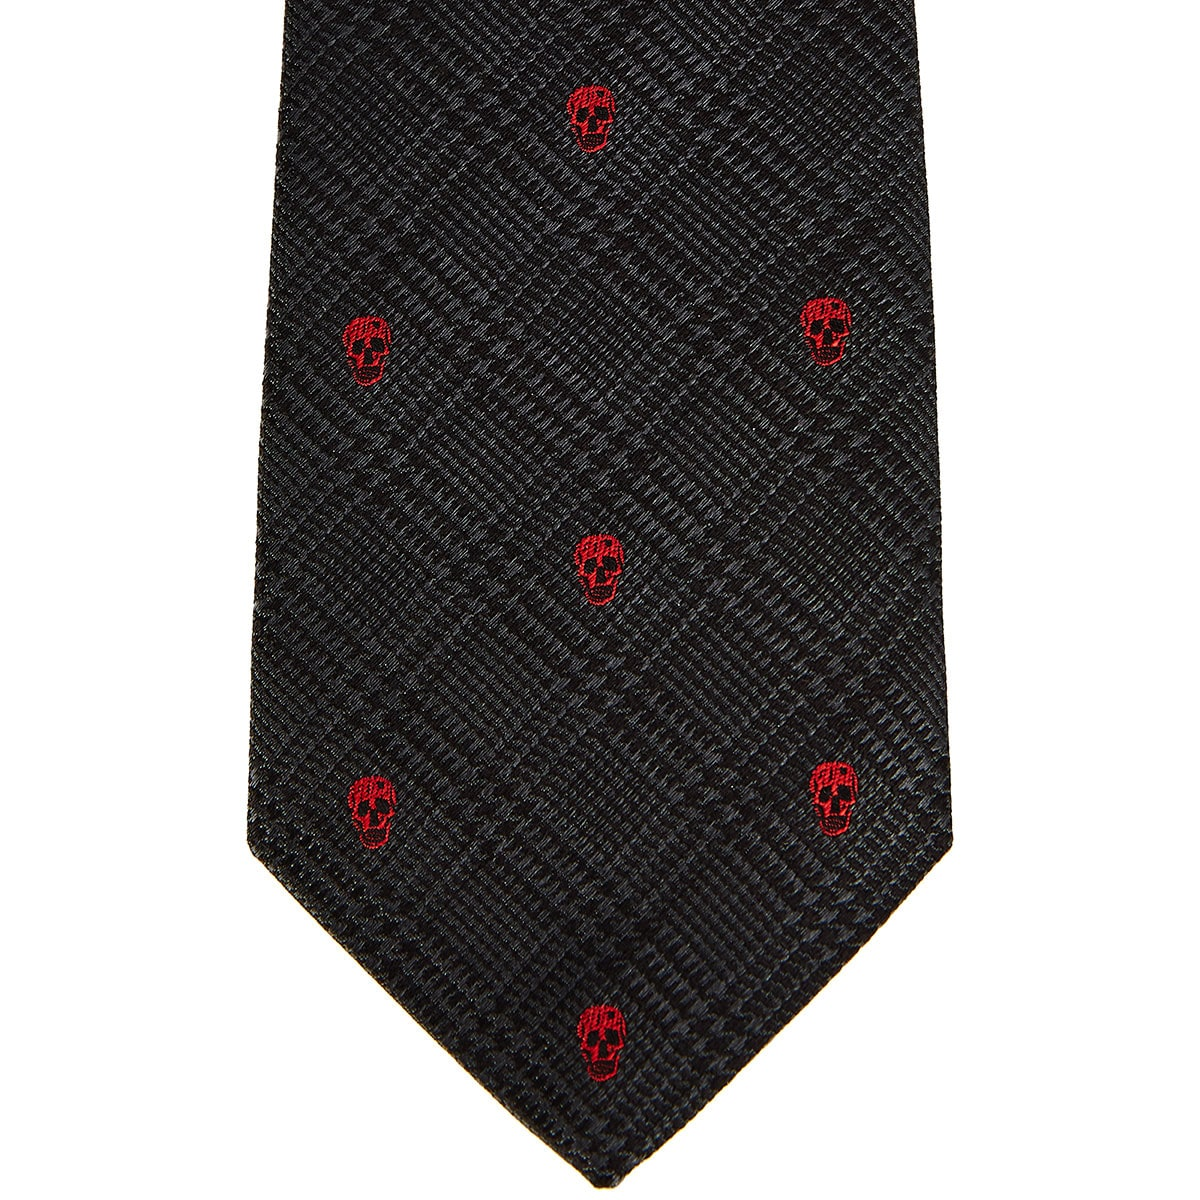 Skull-embroidered checked tie